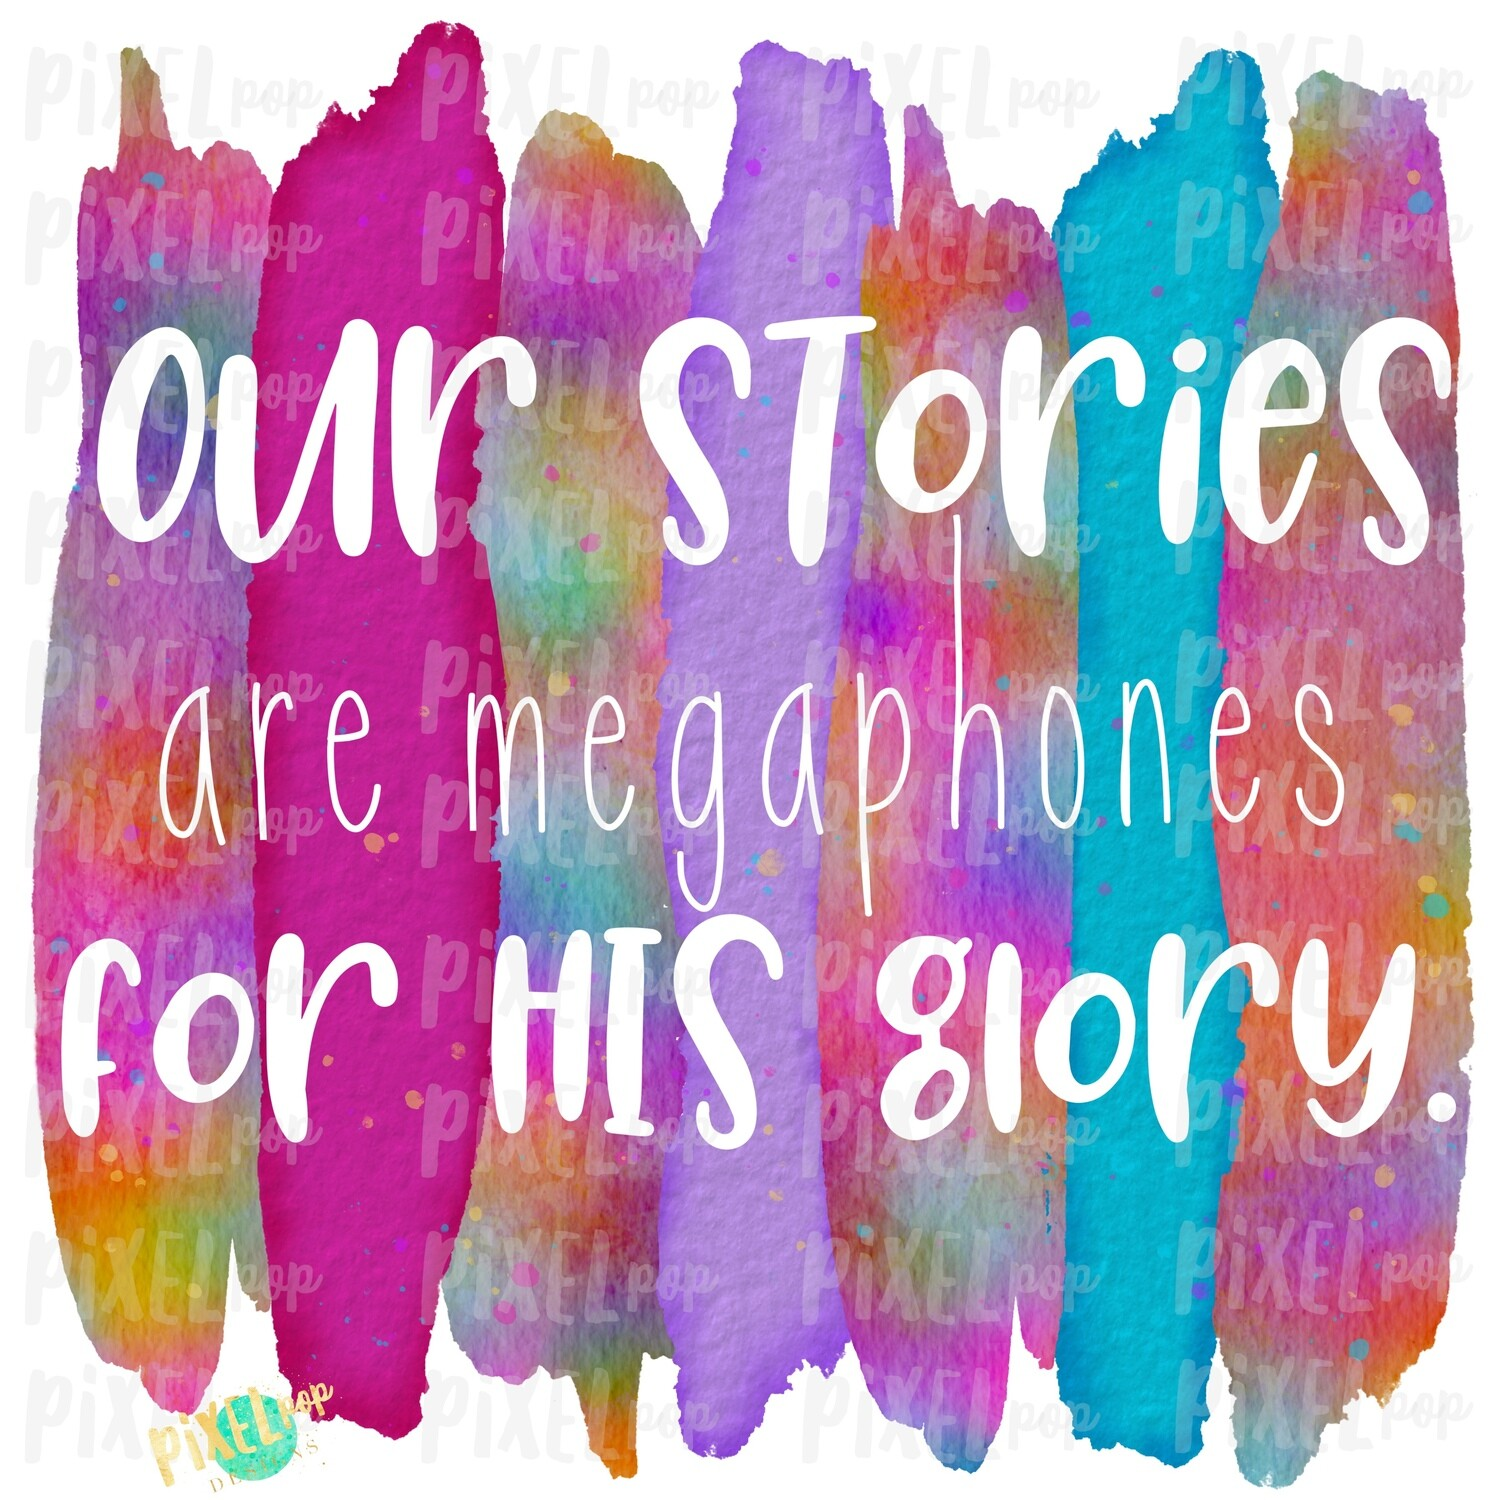 """Our Stories are Megaphones for HIS Glory Tie Dye """"Cut Out"""" Watercolor Brush Stroke Background Sublimation PNG 